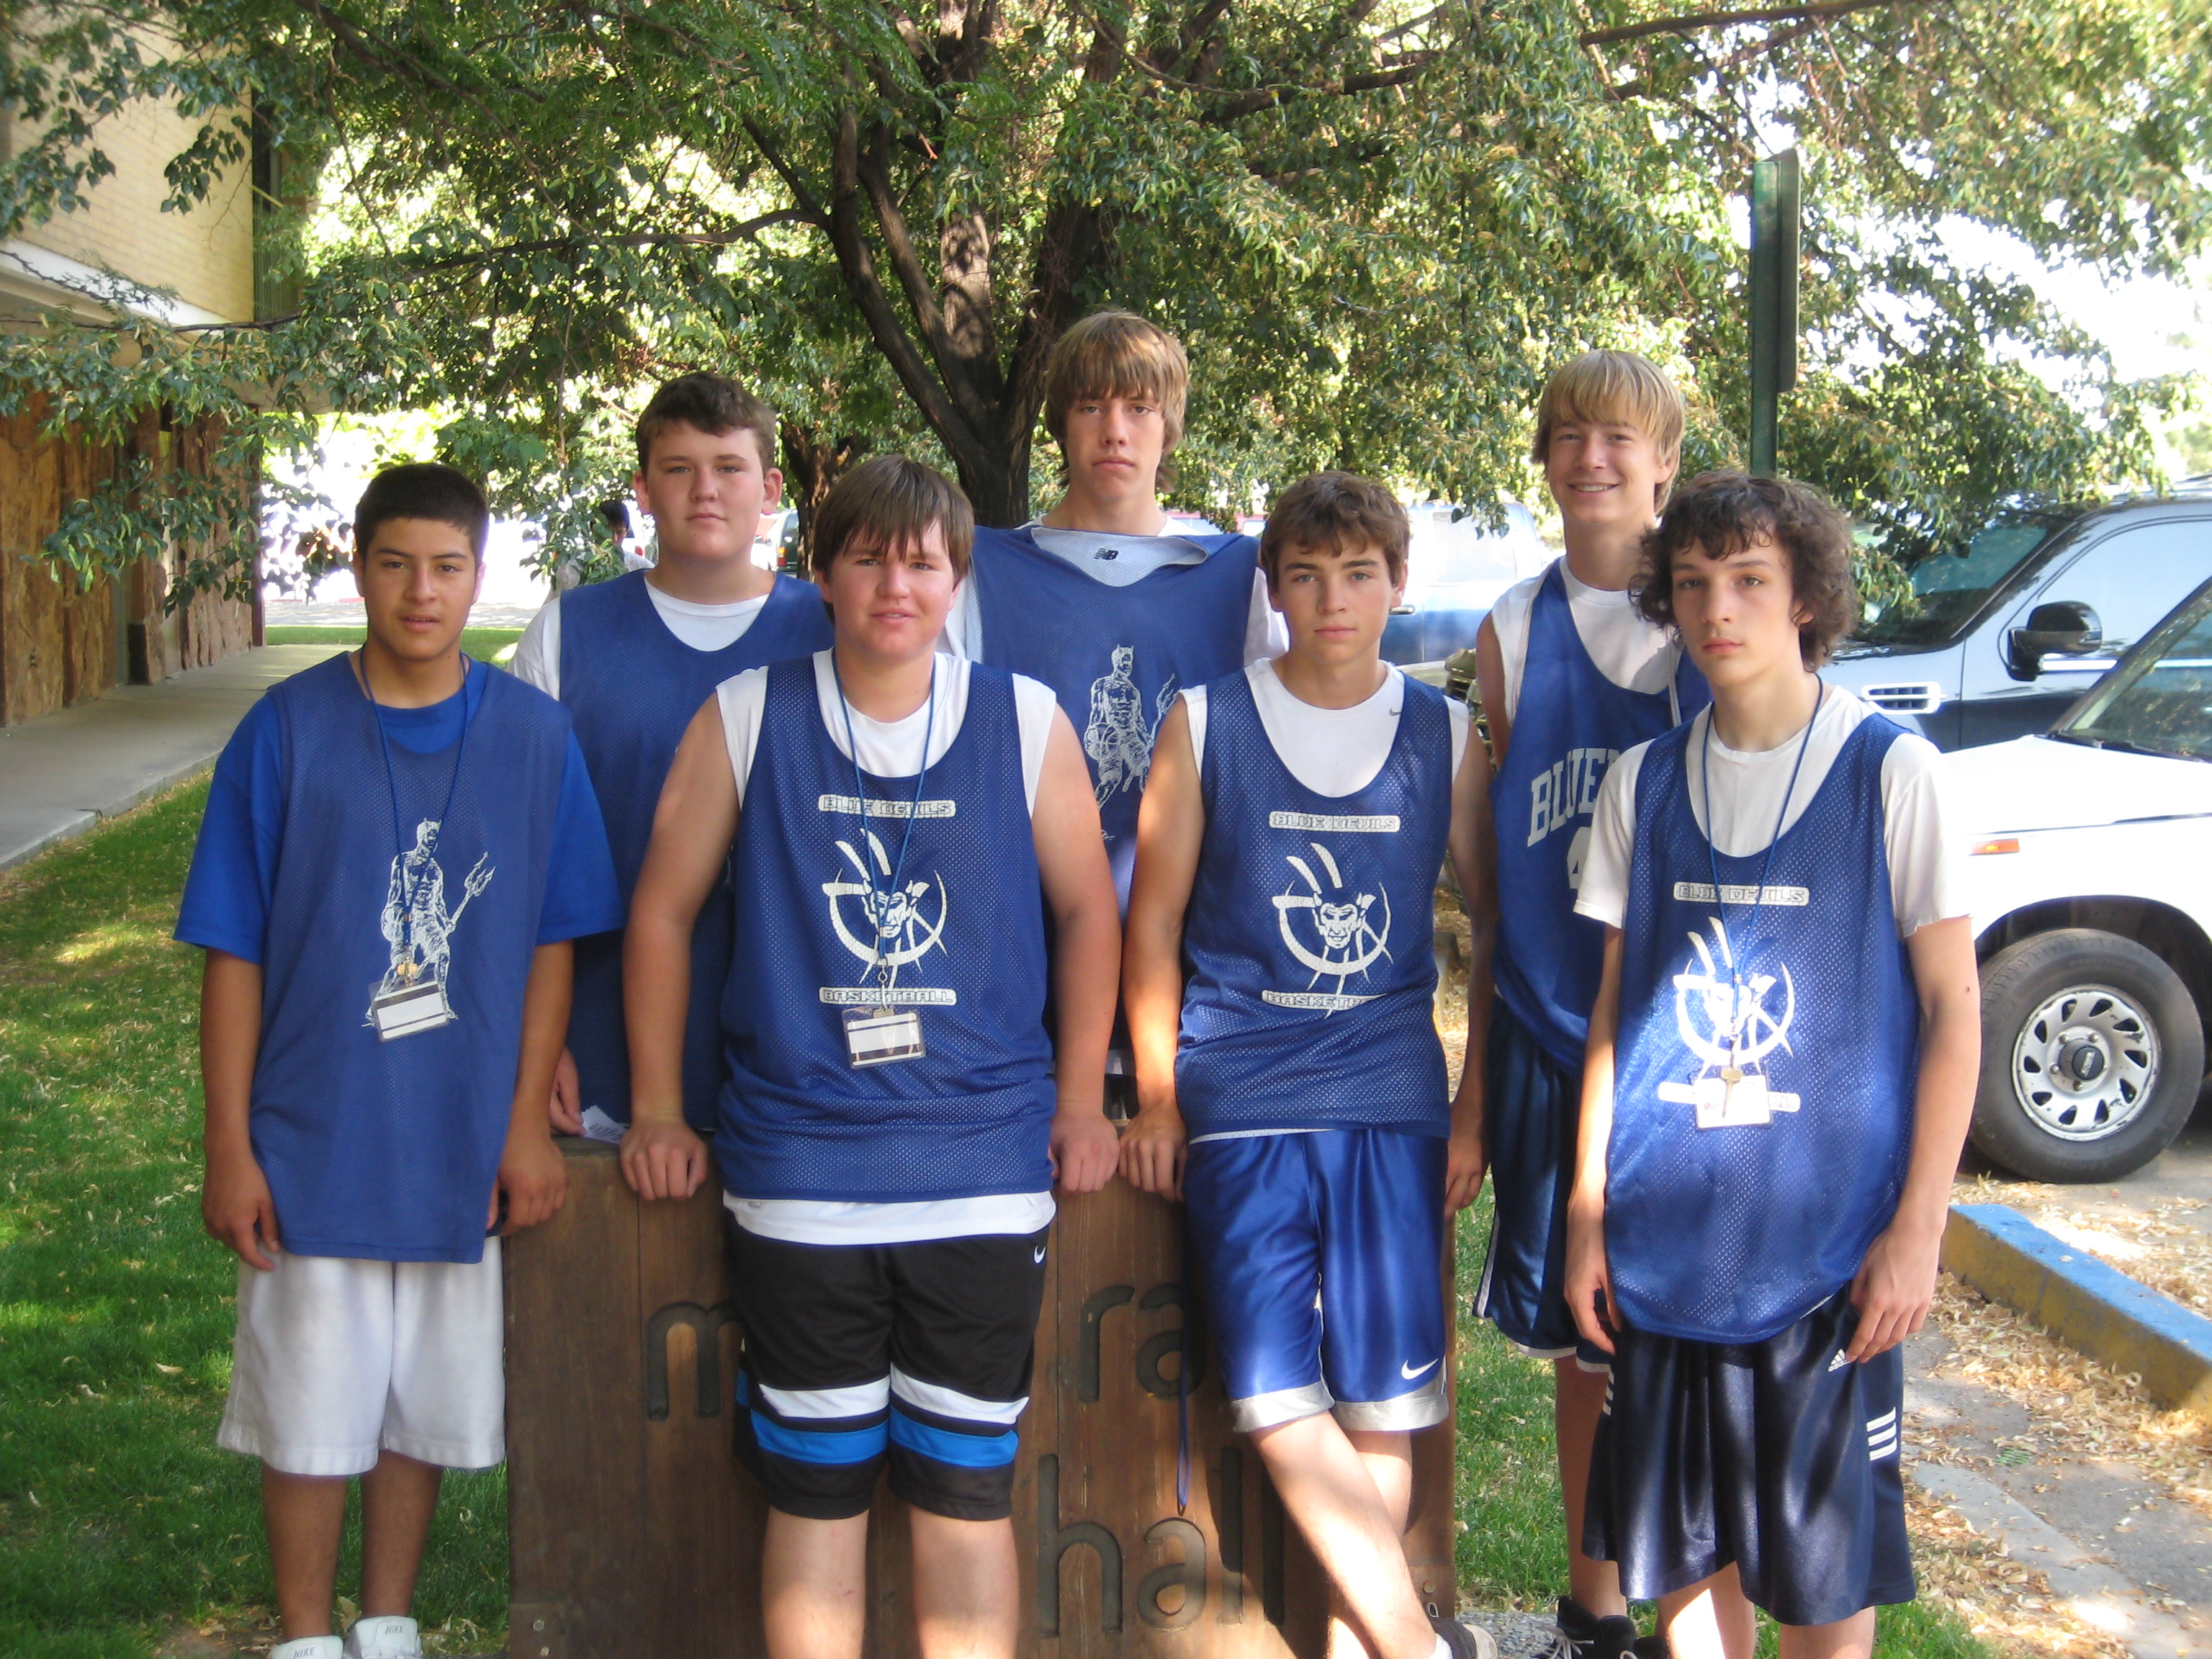 JV_Team_Picture.jpg